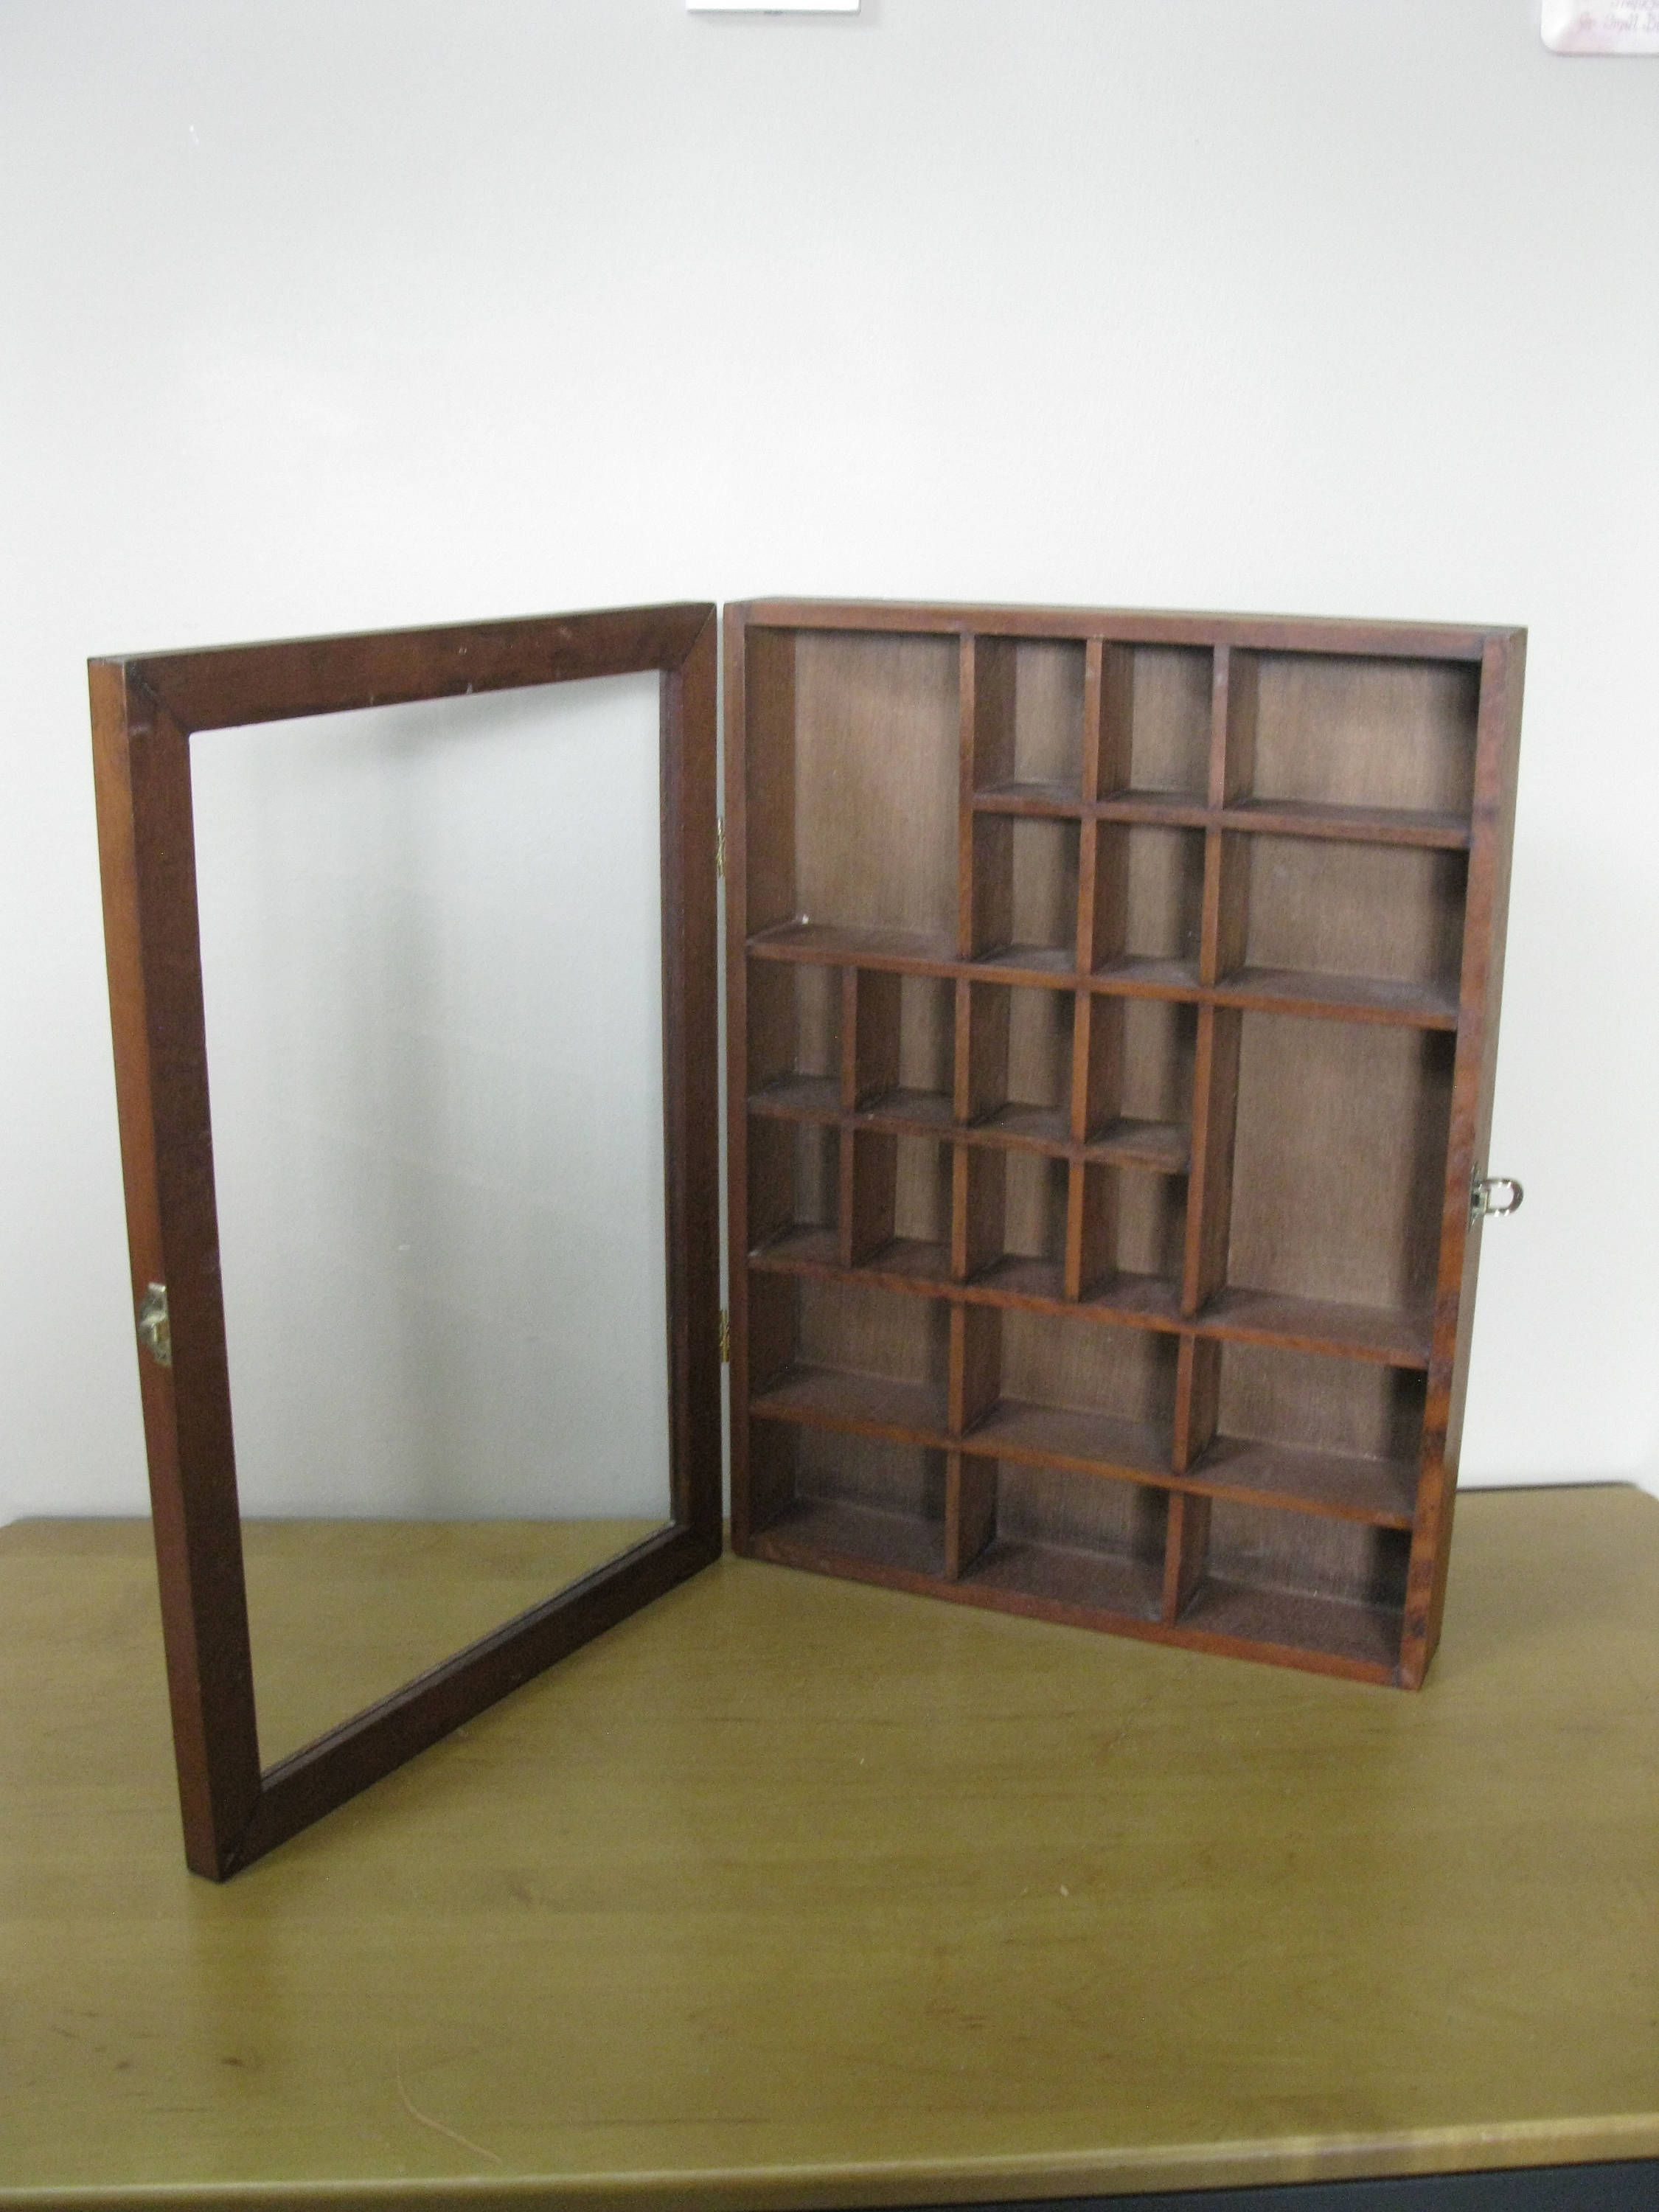 1970s Wood Shadow Box 16 X 12 Glass Door Knick Knack Display Case Wall Curio Miniatures Case 22 Cu Wood Shadow Box Shadow Box Display Case Glass Door